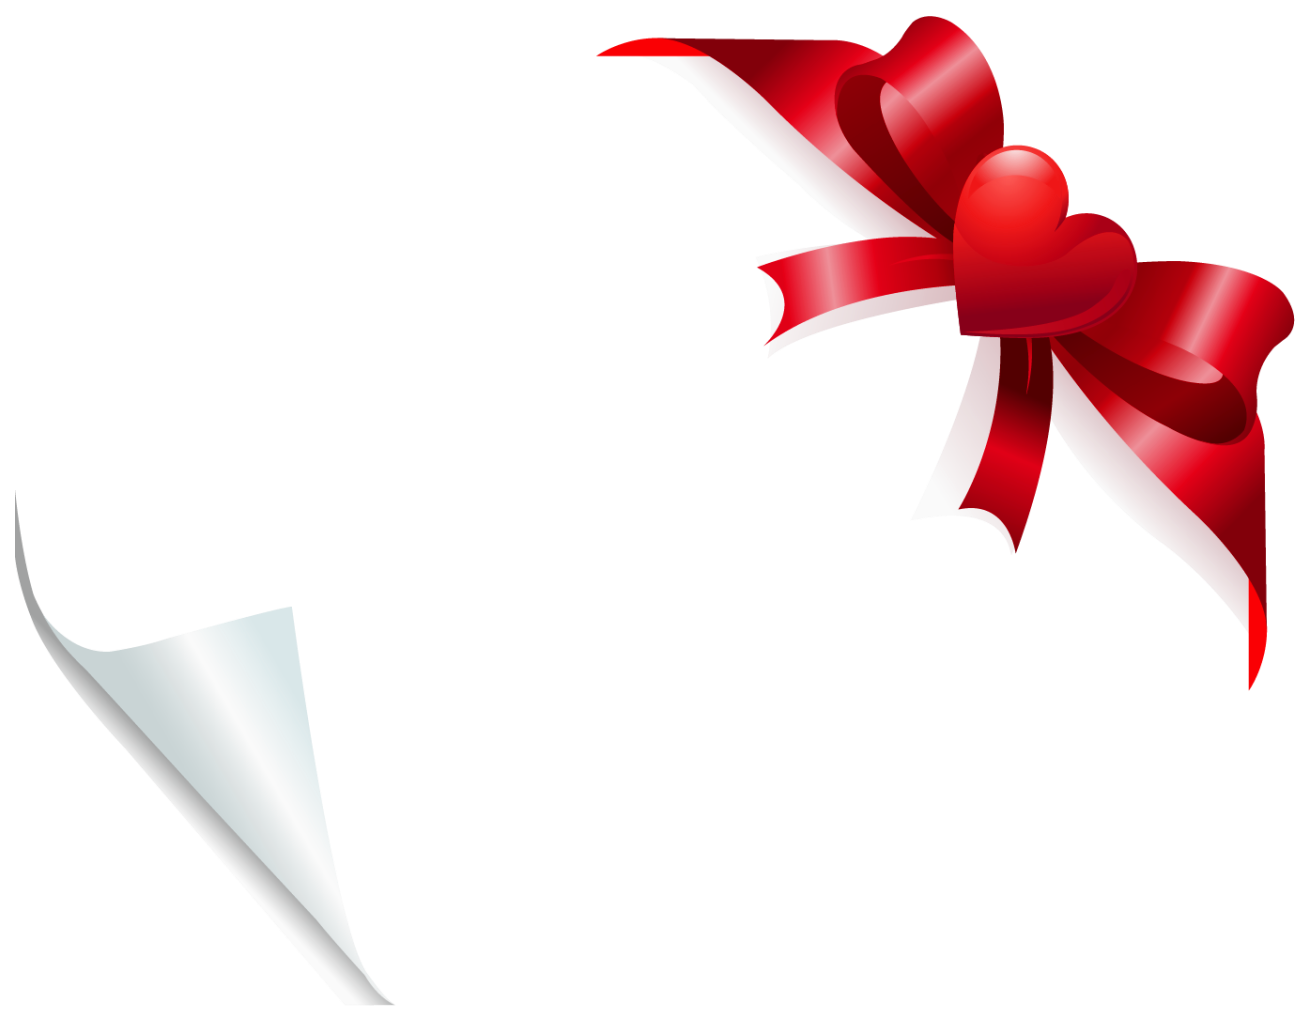 Clipart bow heart. Valentine decoration for cards